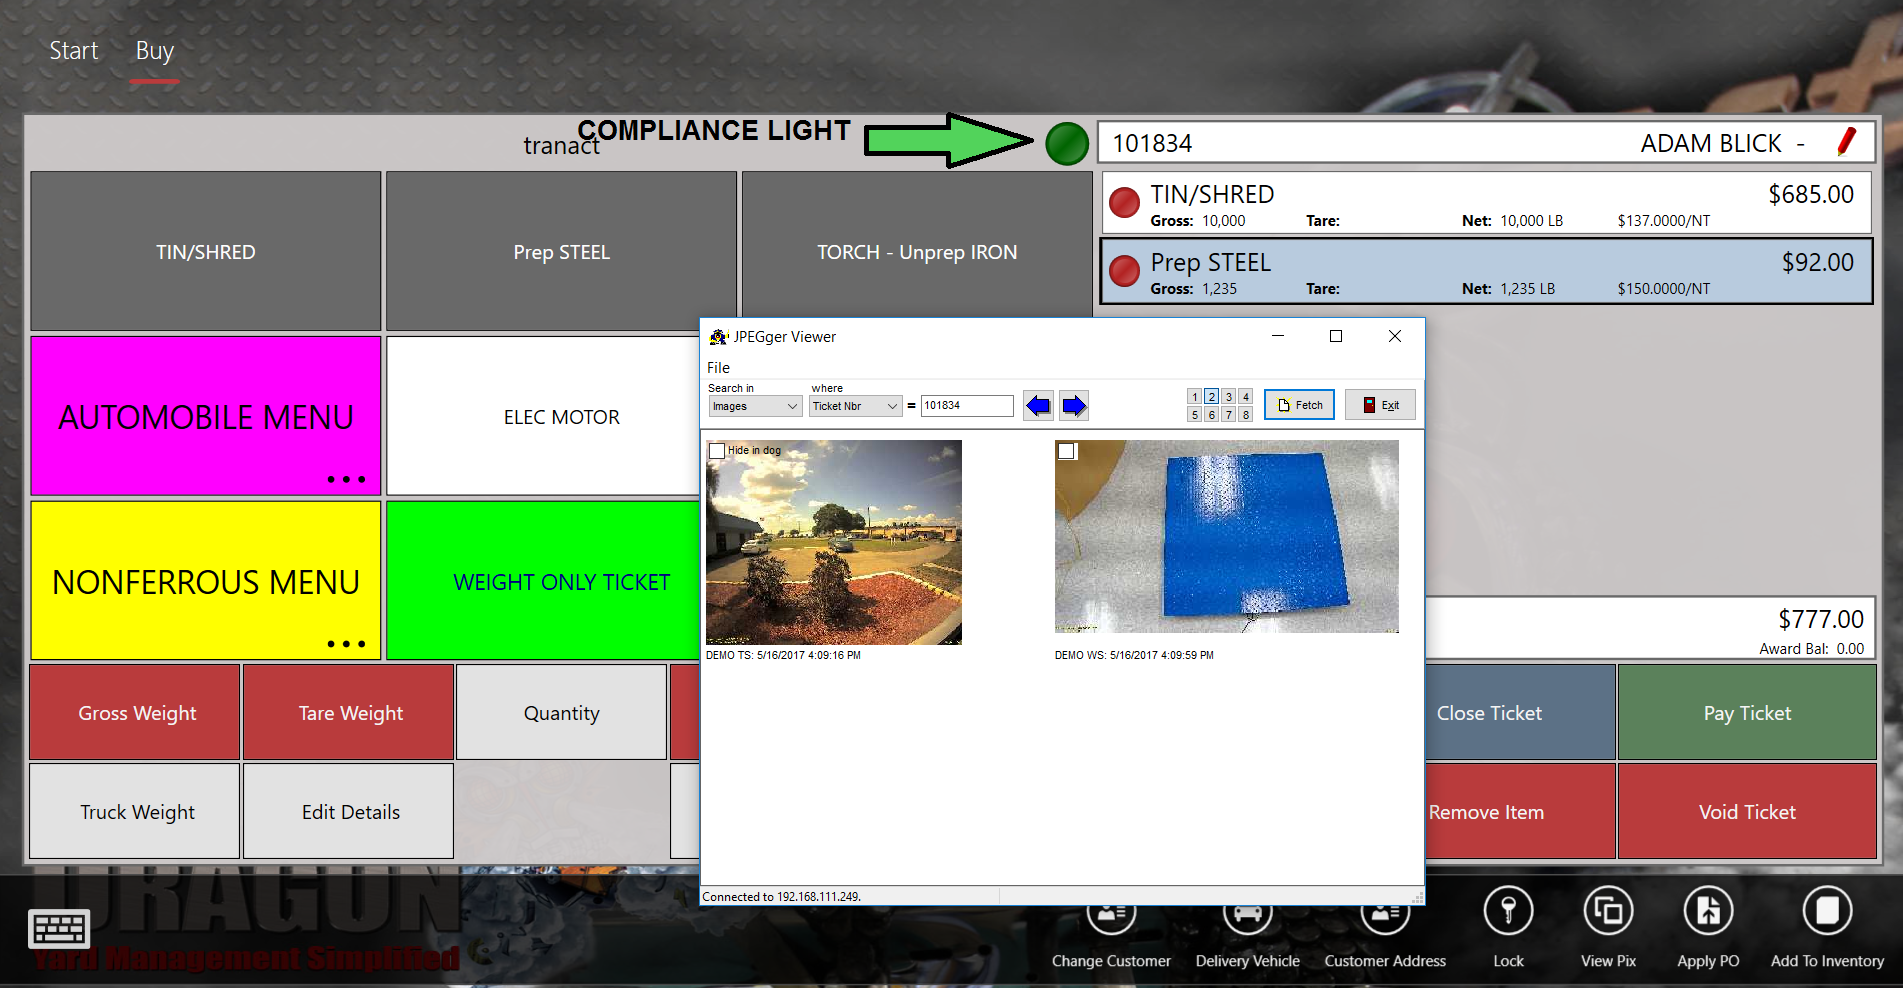 Scrap Dragon Buy Menu Compliance Light and JPEGger Image Viewer